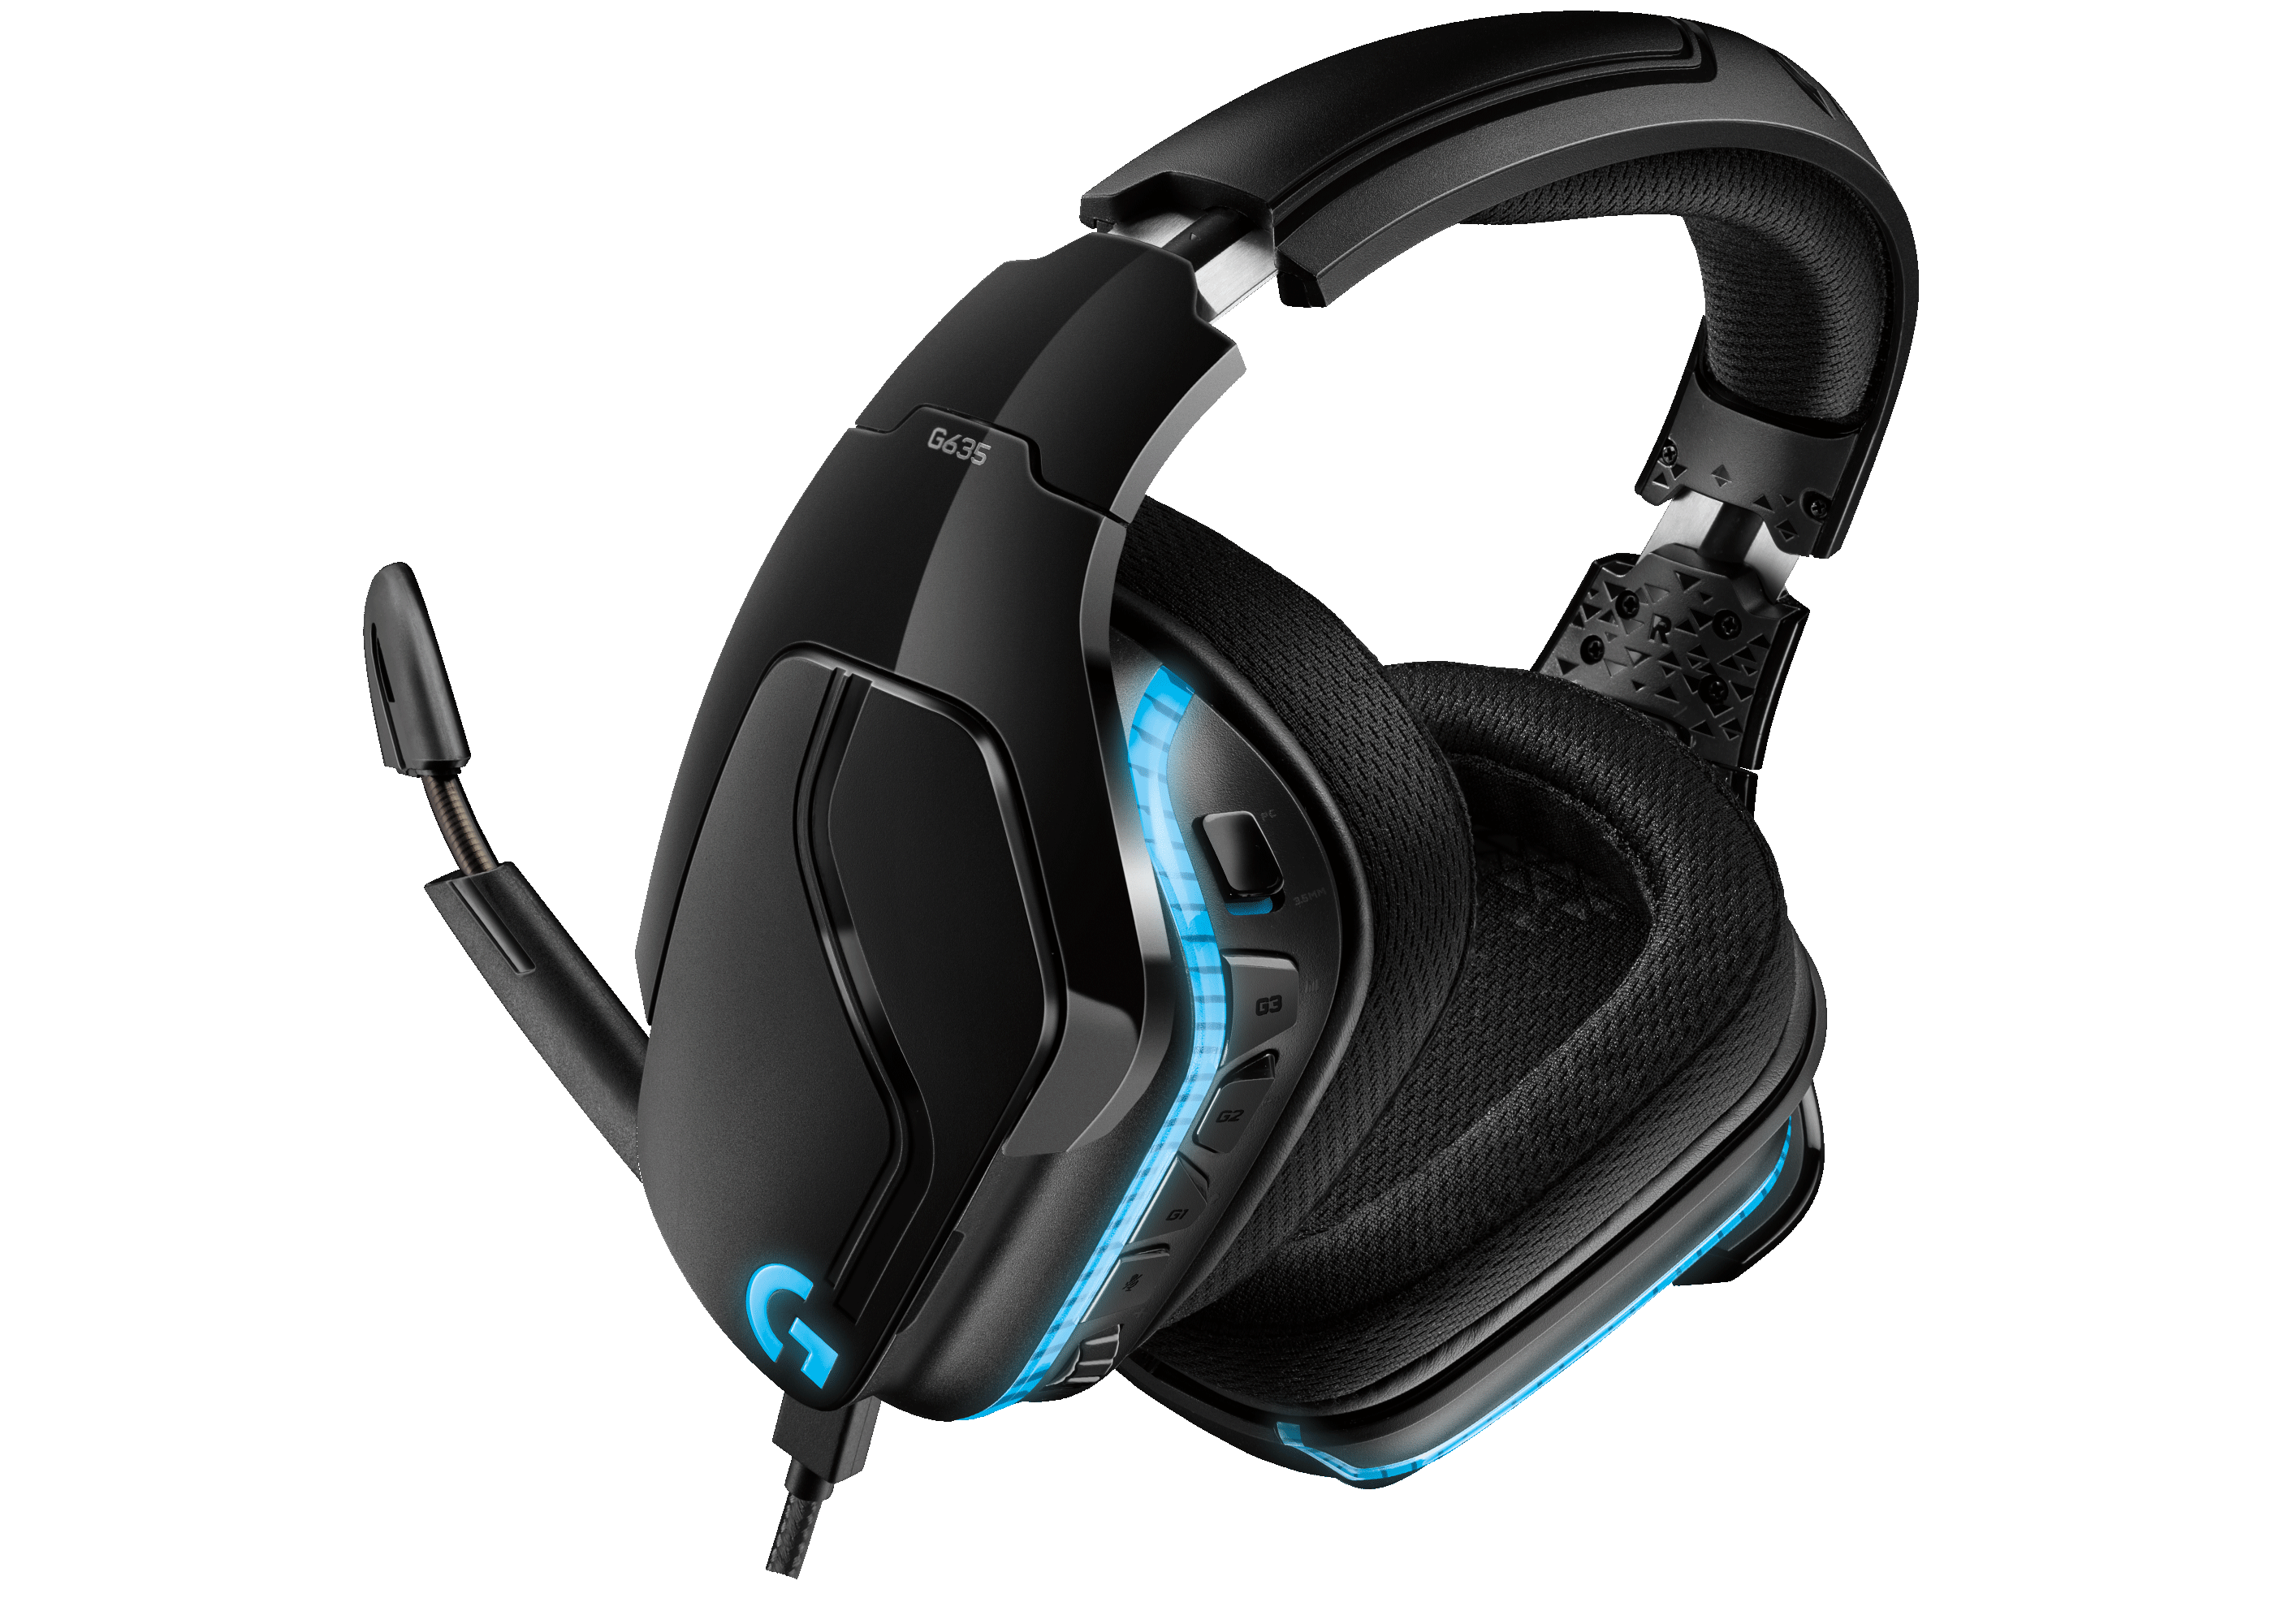 Logitech G633s 7 1 LIGHTSYNC Gaming Headset